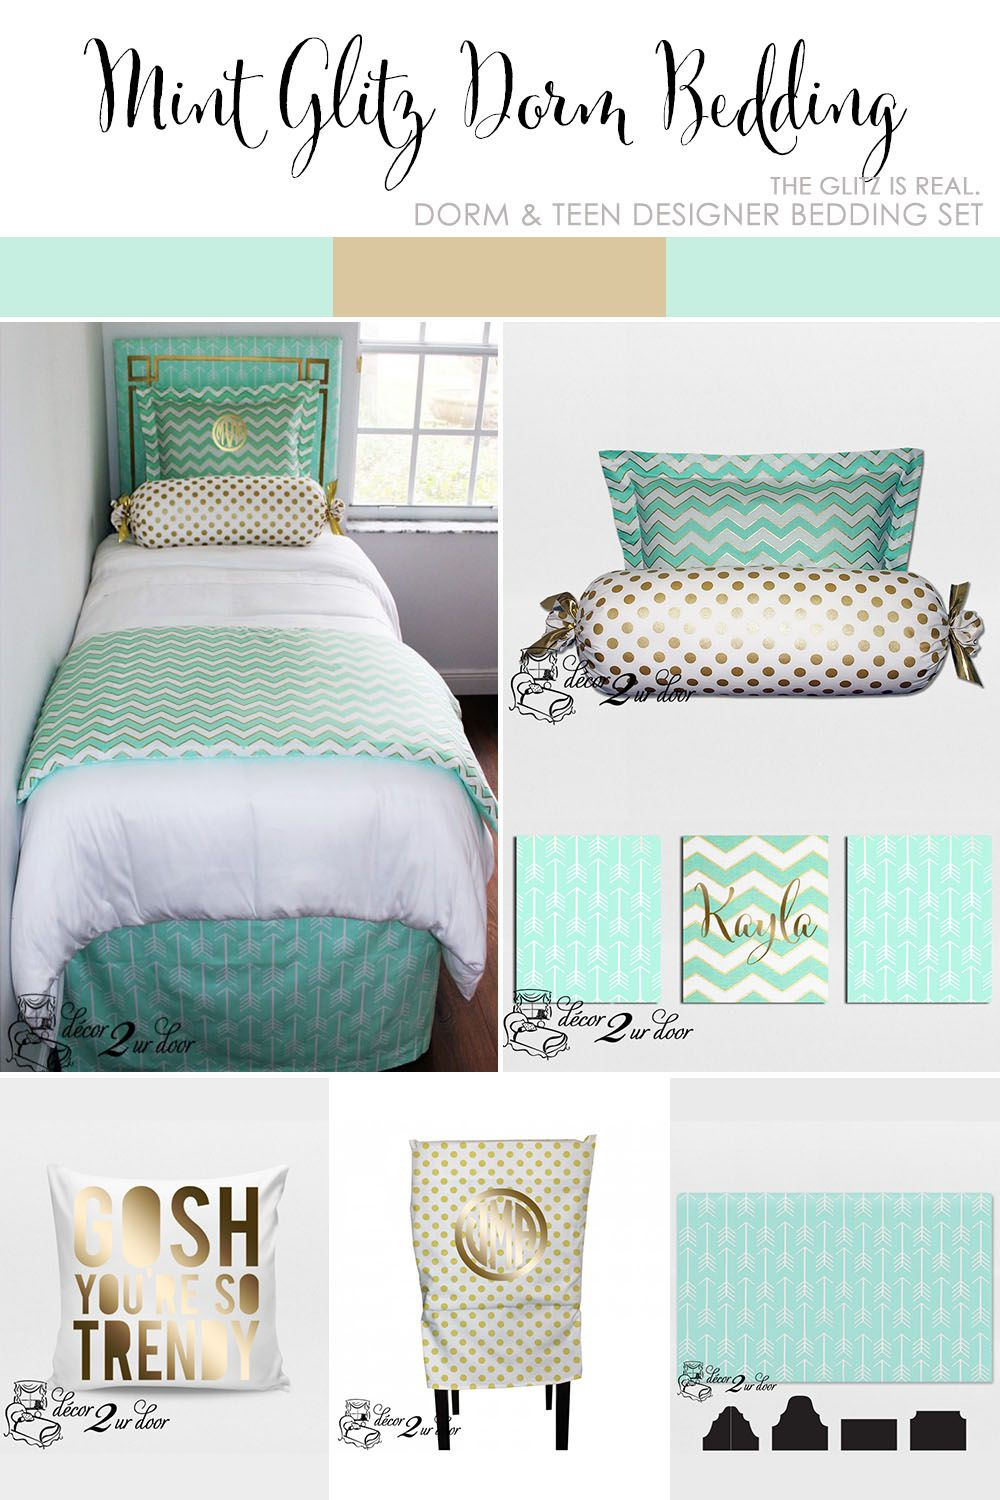 decorating a dorm room check out décor 2 ur door for the latest